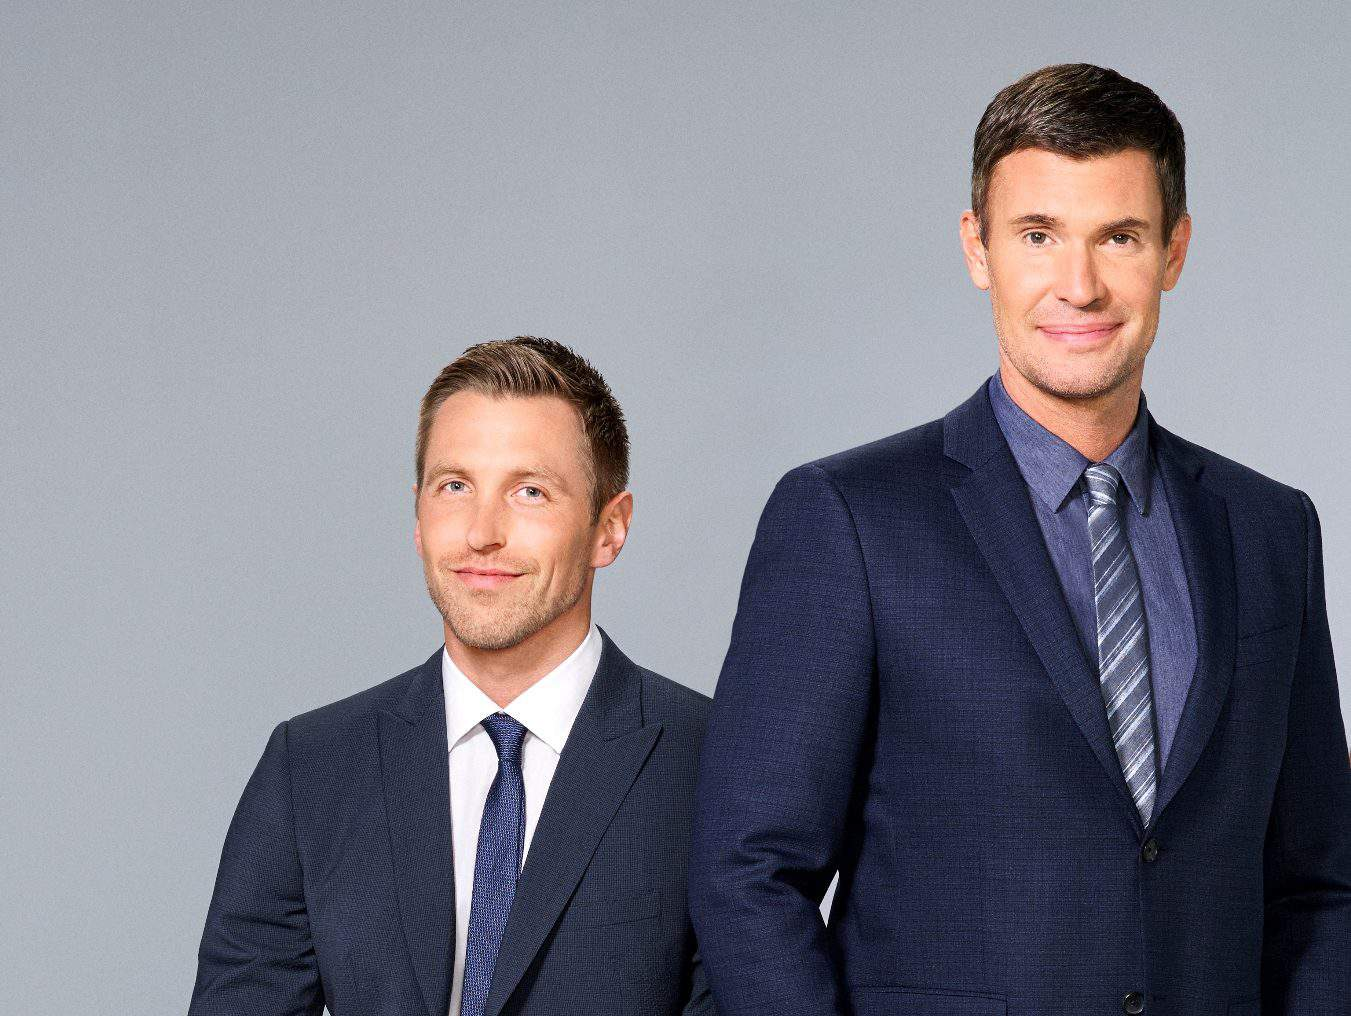 Flipping Out Star Jeff Lewis Responds After Gage Edward Files Lawsuit Against Him Over $125,000 Loan, Was Jeff Served on His 50th Birthday?